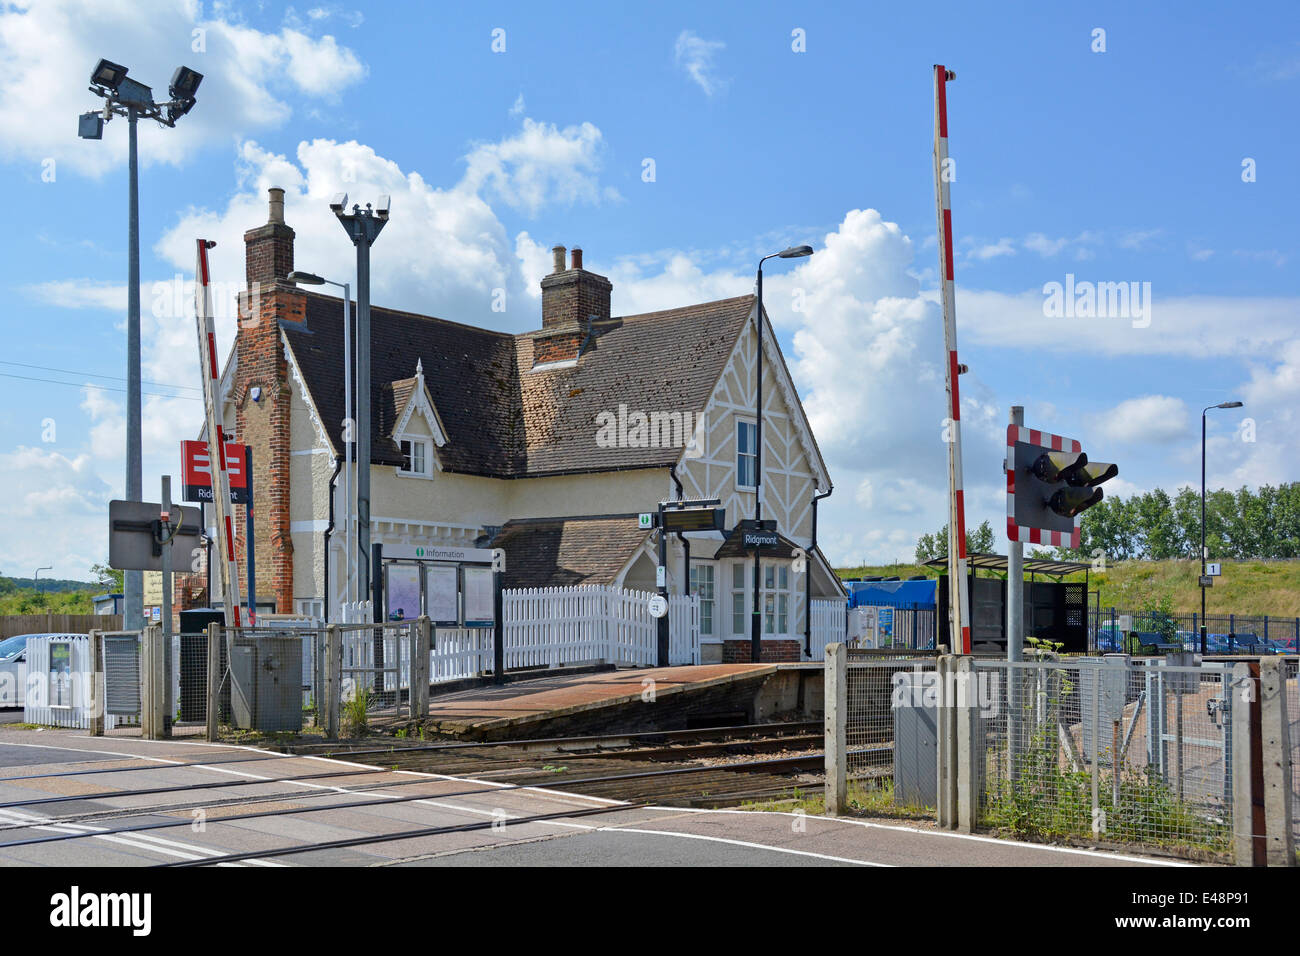 level crossing uk stock photos level crossing uk stock images alamy. Black Bedroom Furniture Sets. Home Design Ideas